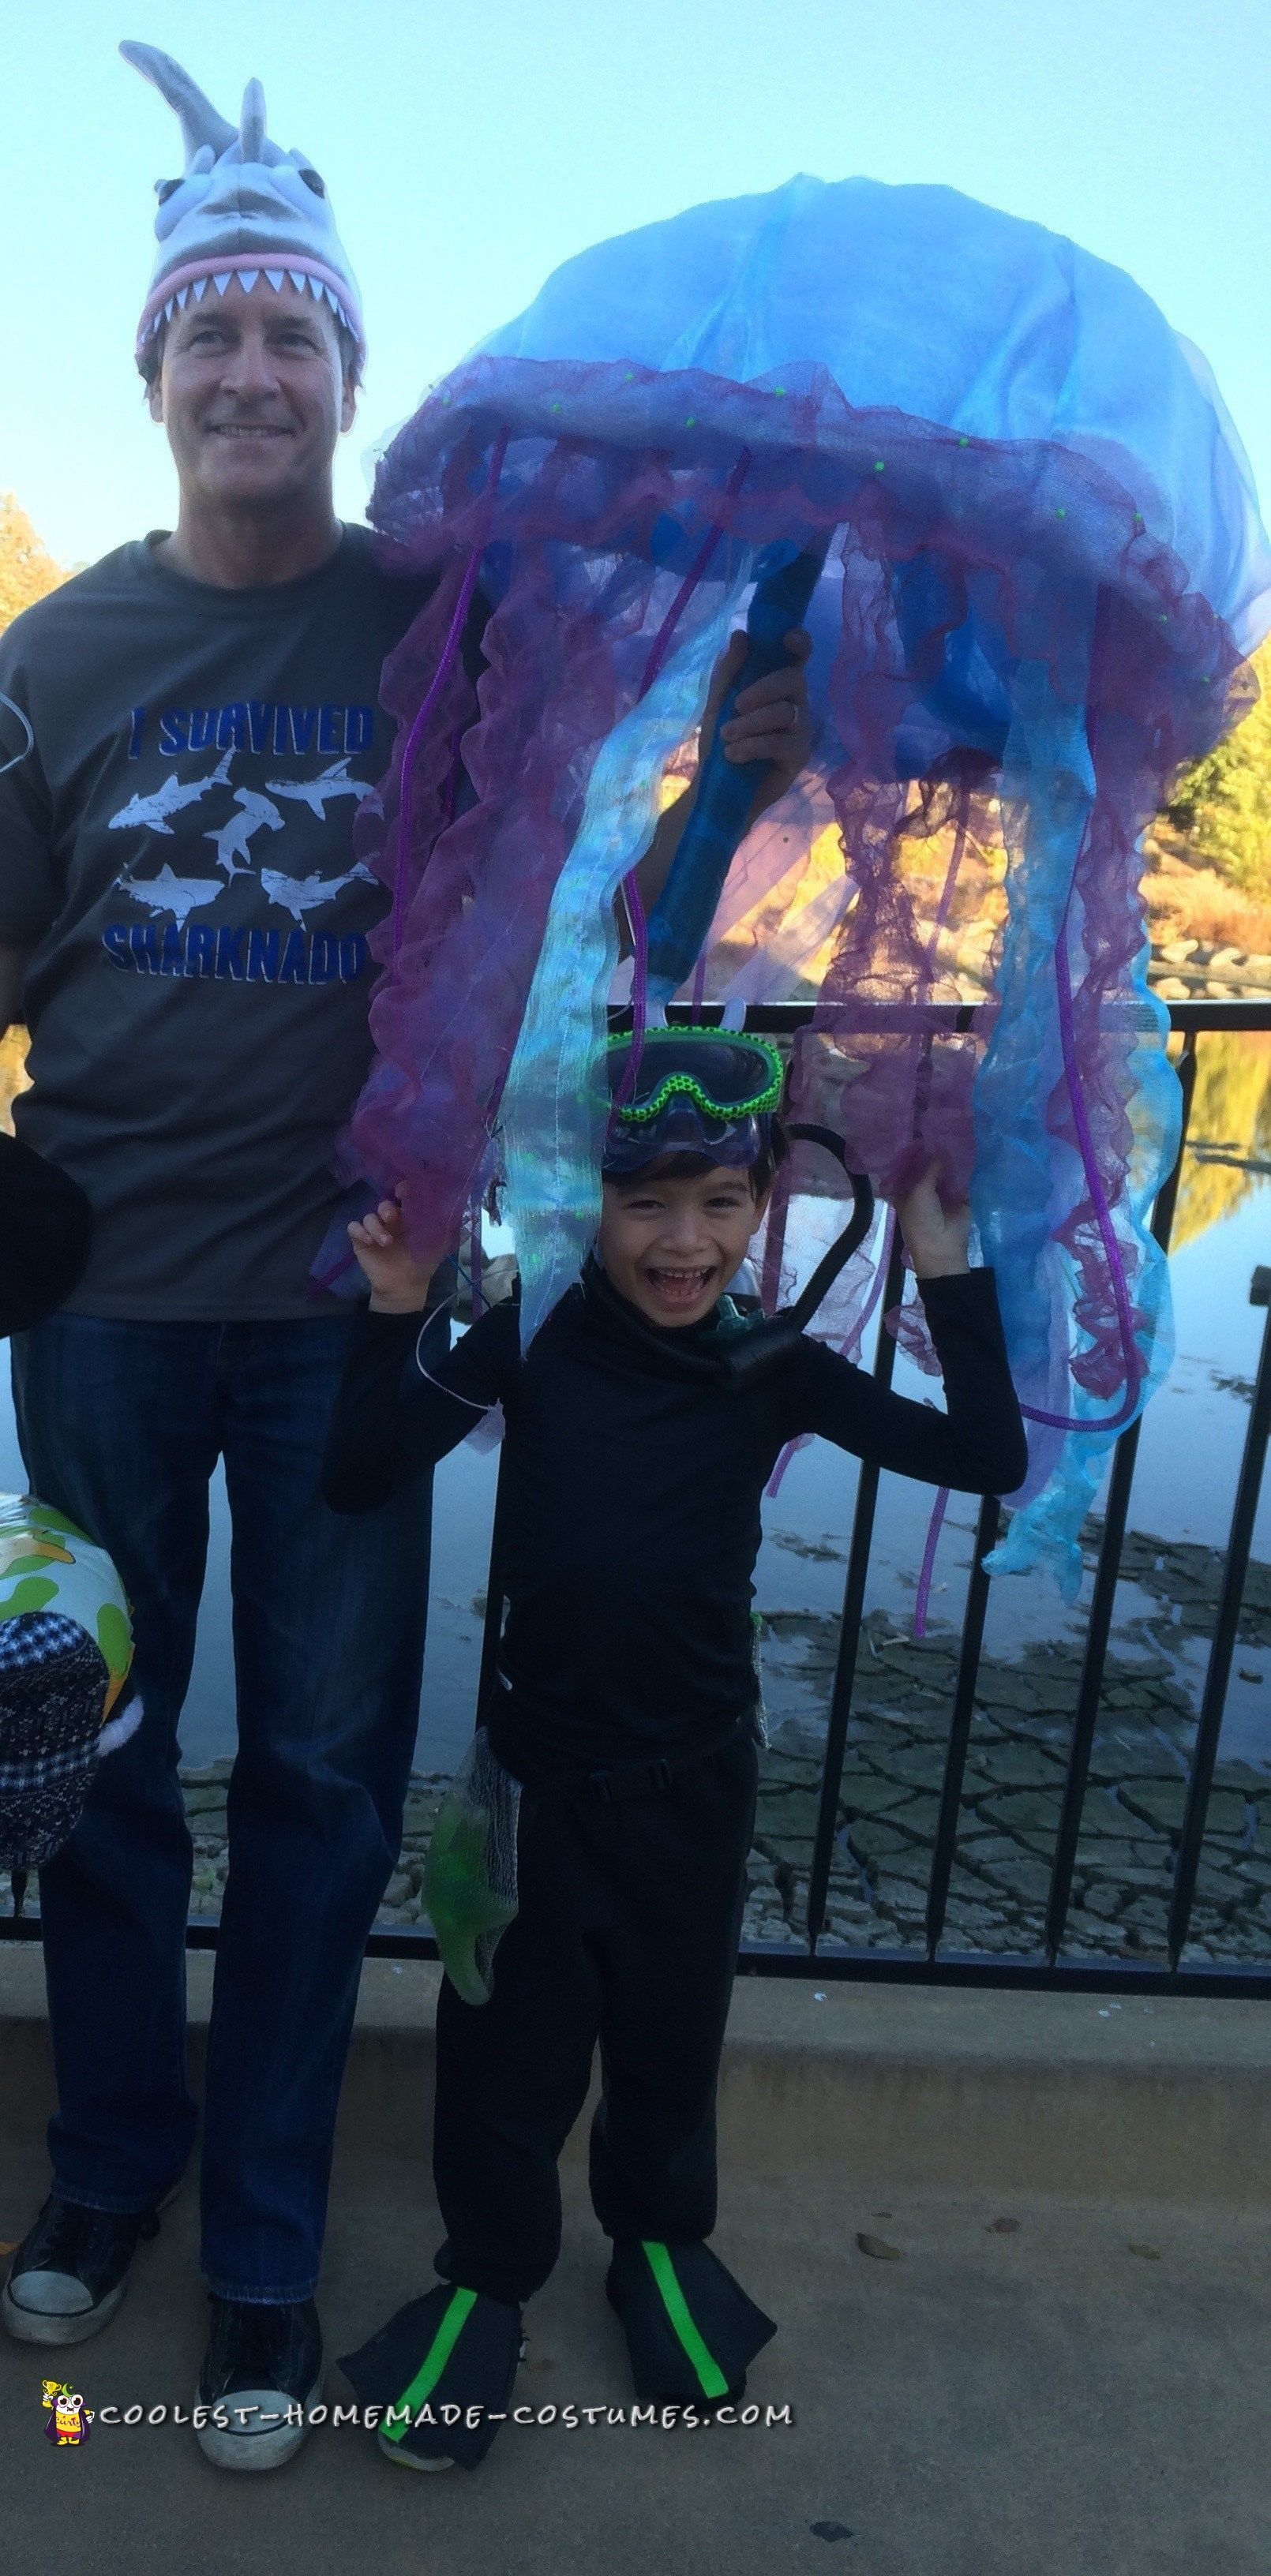 Jellyfish Diving Gear : jellyfish, diving, Scuba, Diver, Trapped, Jellyfish, Costume, Costume,, Homemade, Costumes